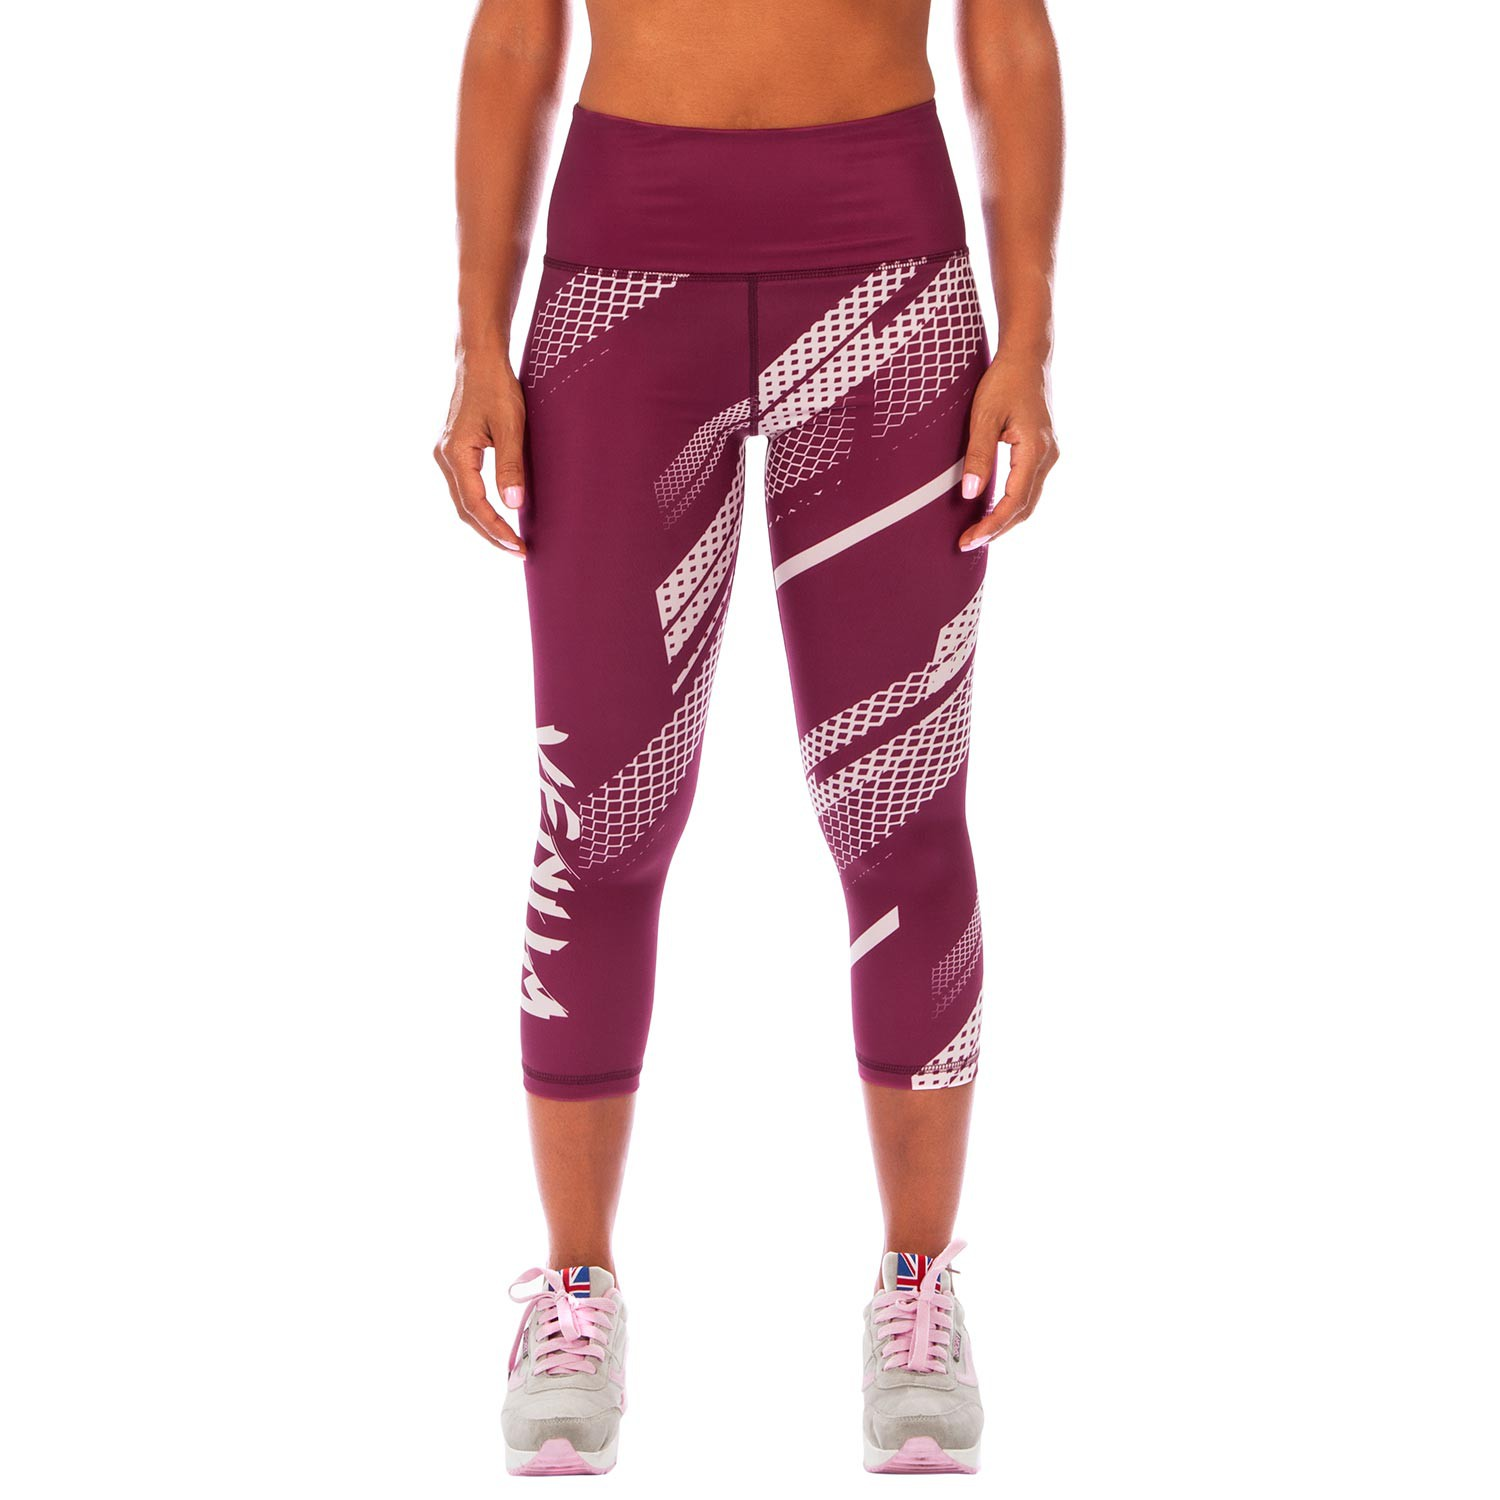 VENUM RAPID 3/4 - es leggings, Szilva